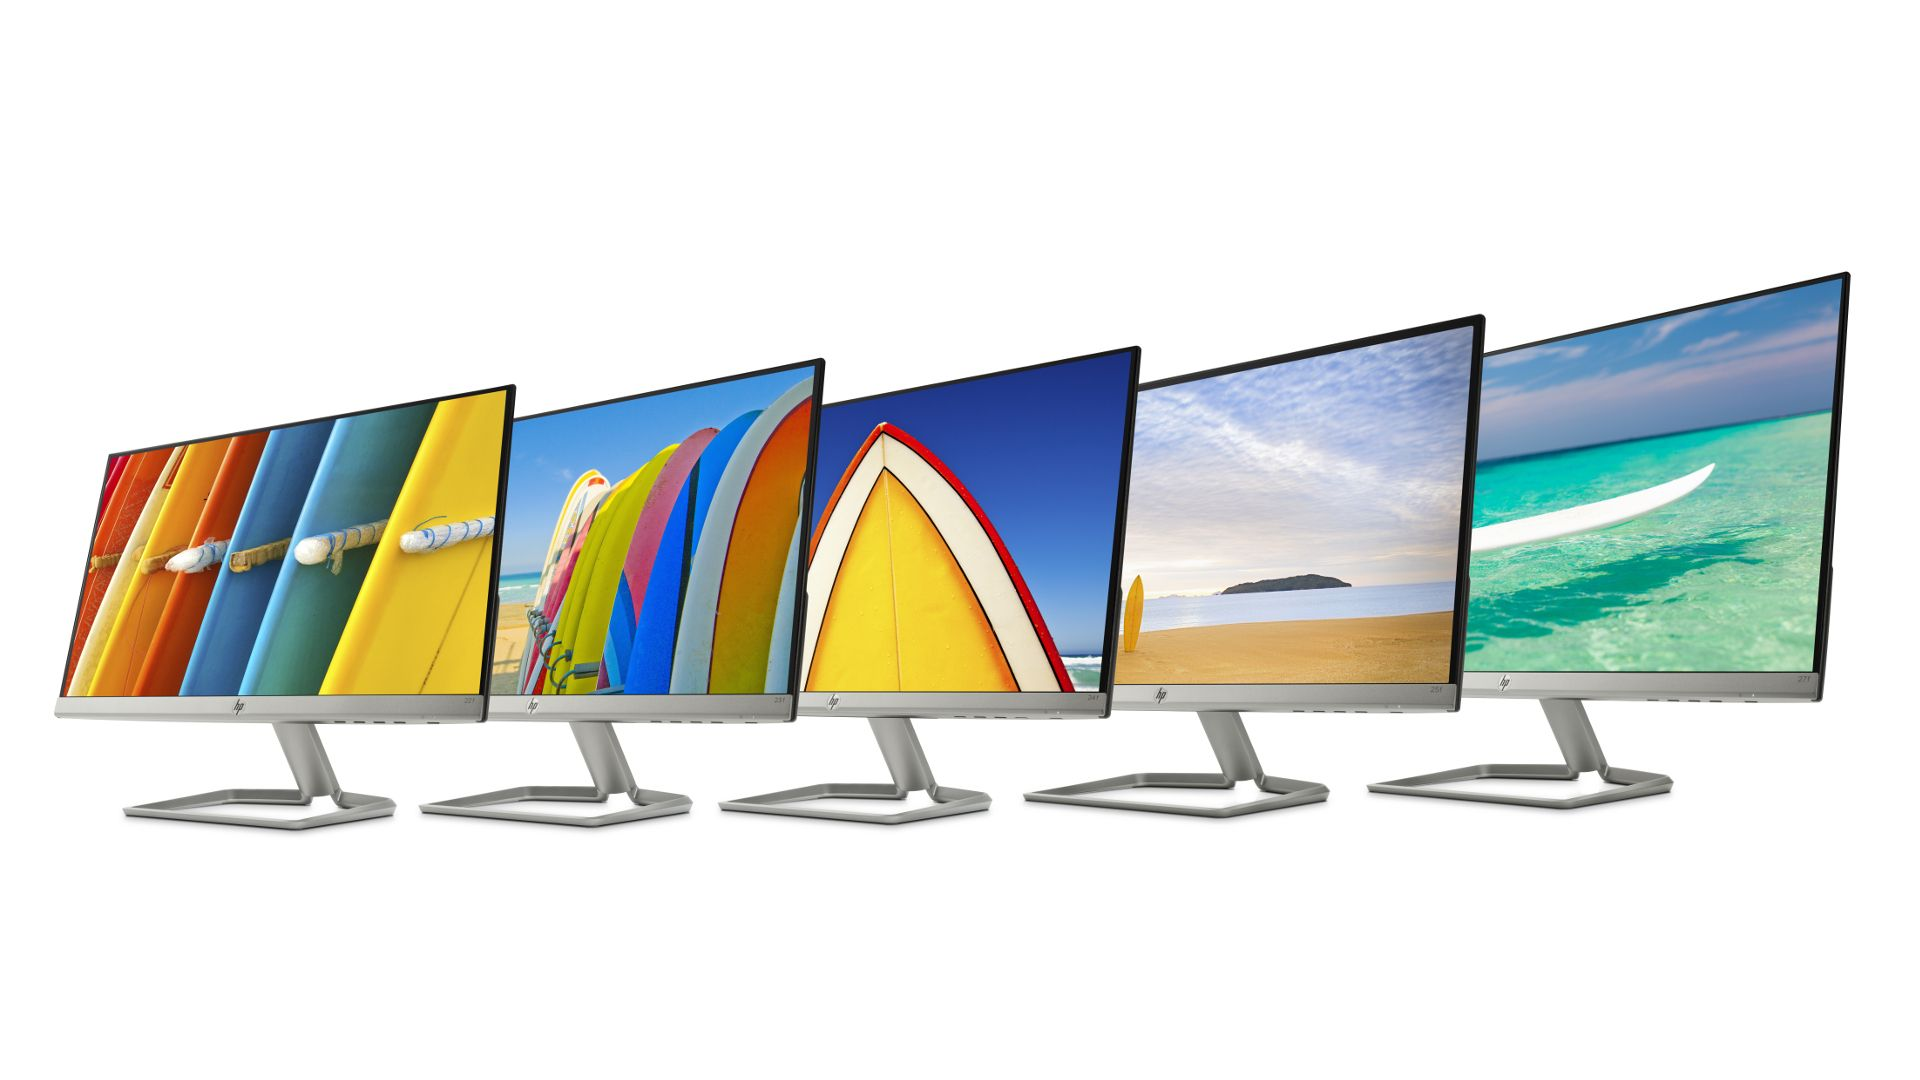 HPs new monitors aim for smooth gaming without lighting up your wallet